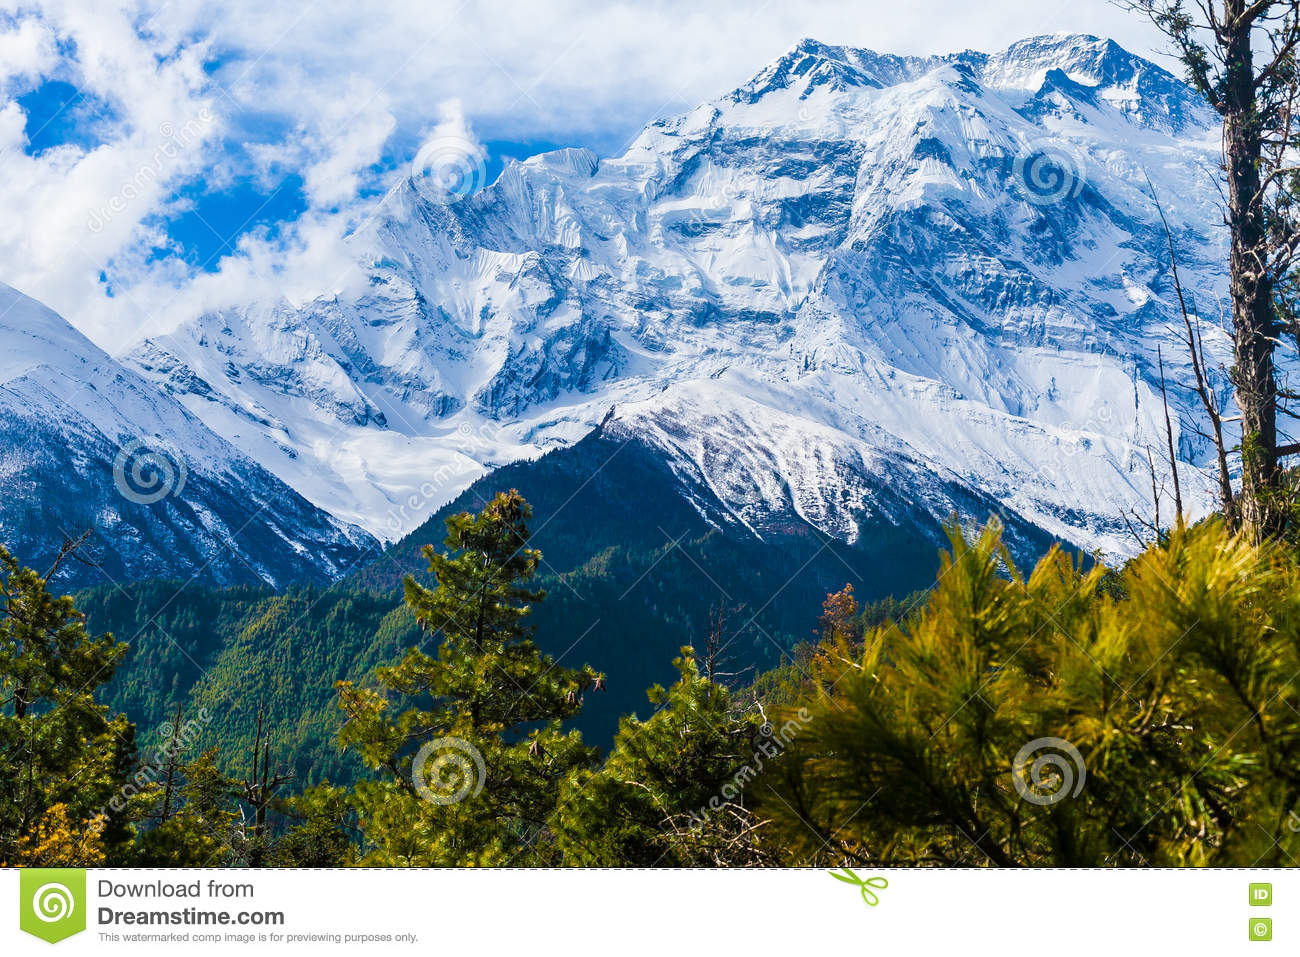 Landscapes Snow Mountains Nature Morning Viewpoint.Mountain Trekking  Landscape Background. Nobody Photo.Asia Horizontal Picture. Sunlights White  Clouds Blue ...